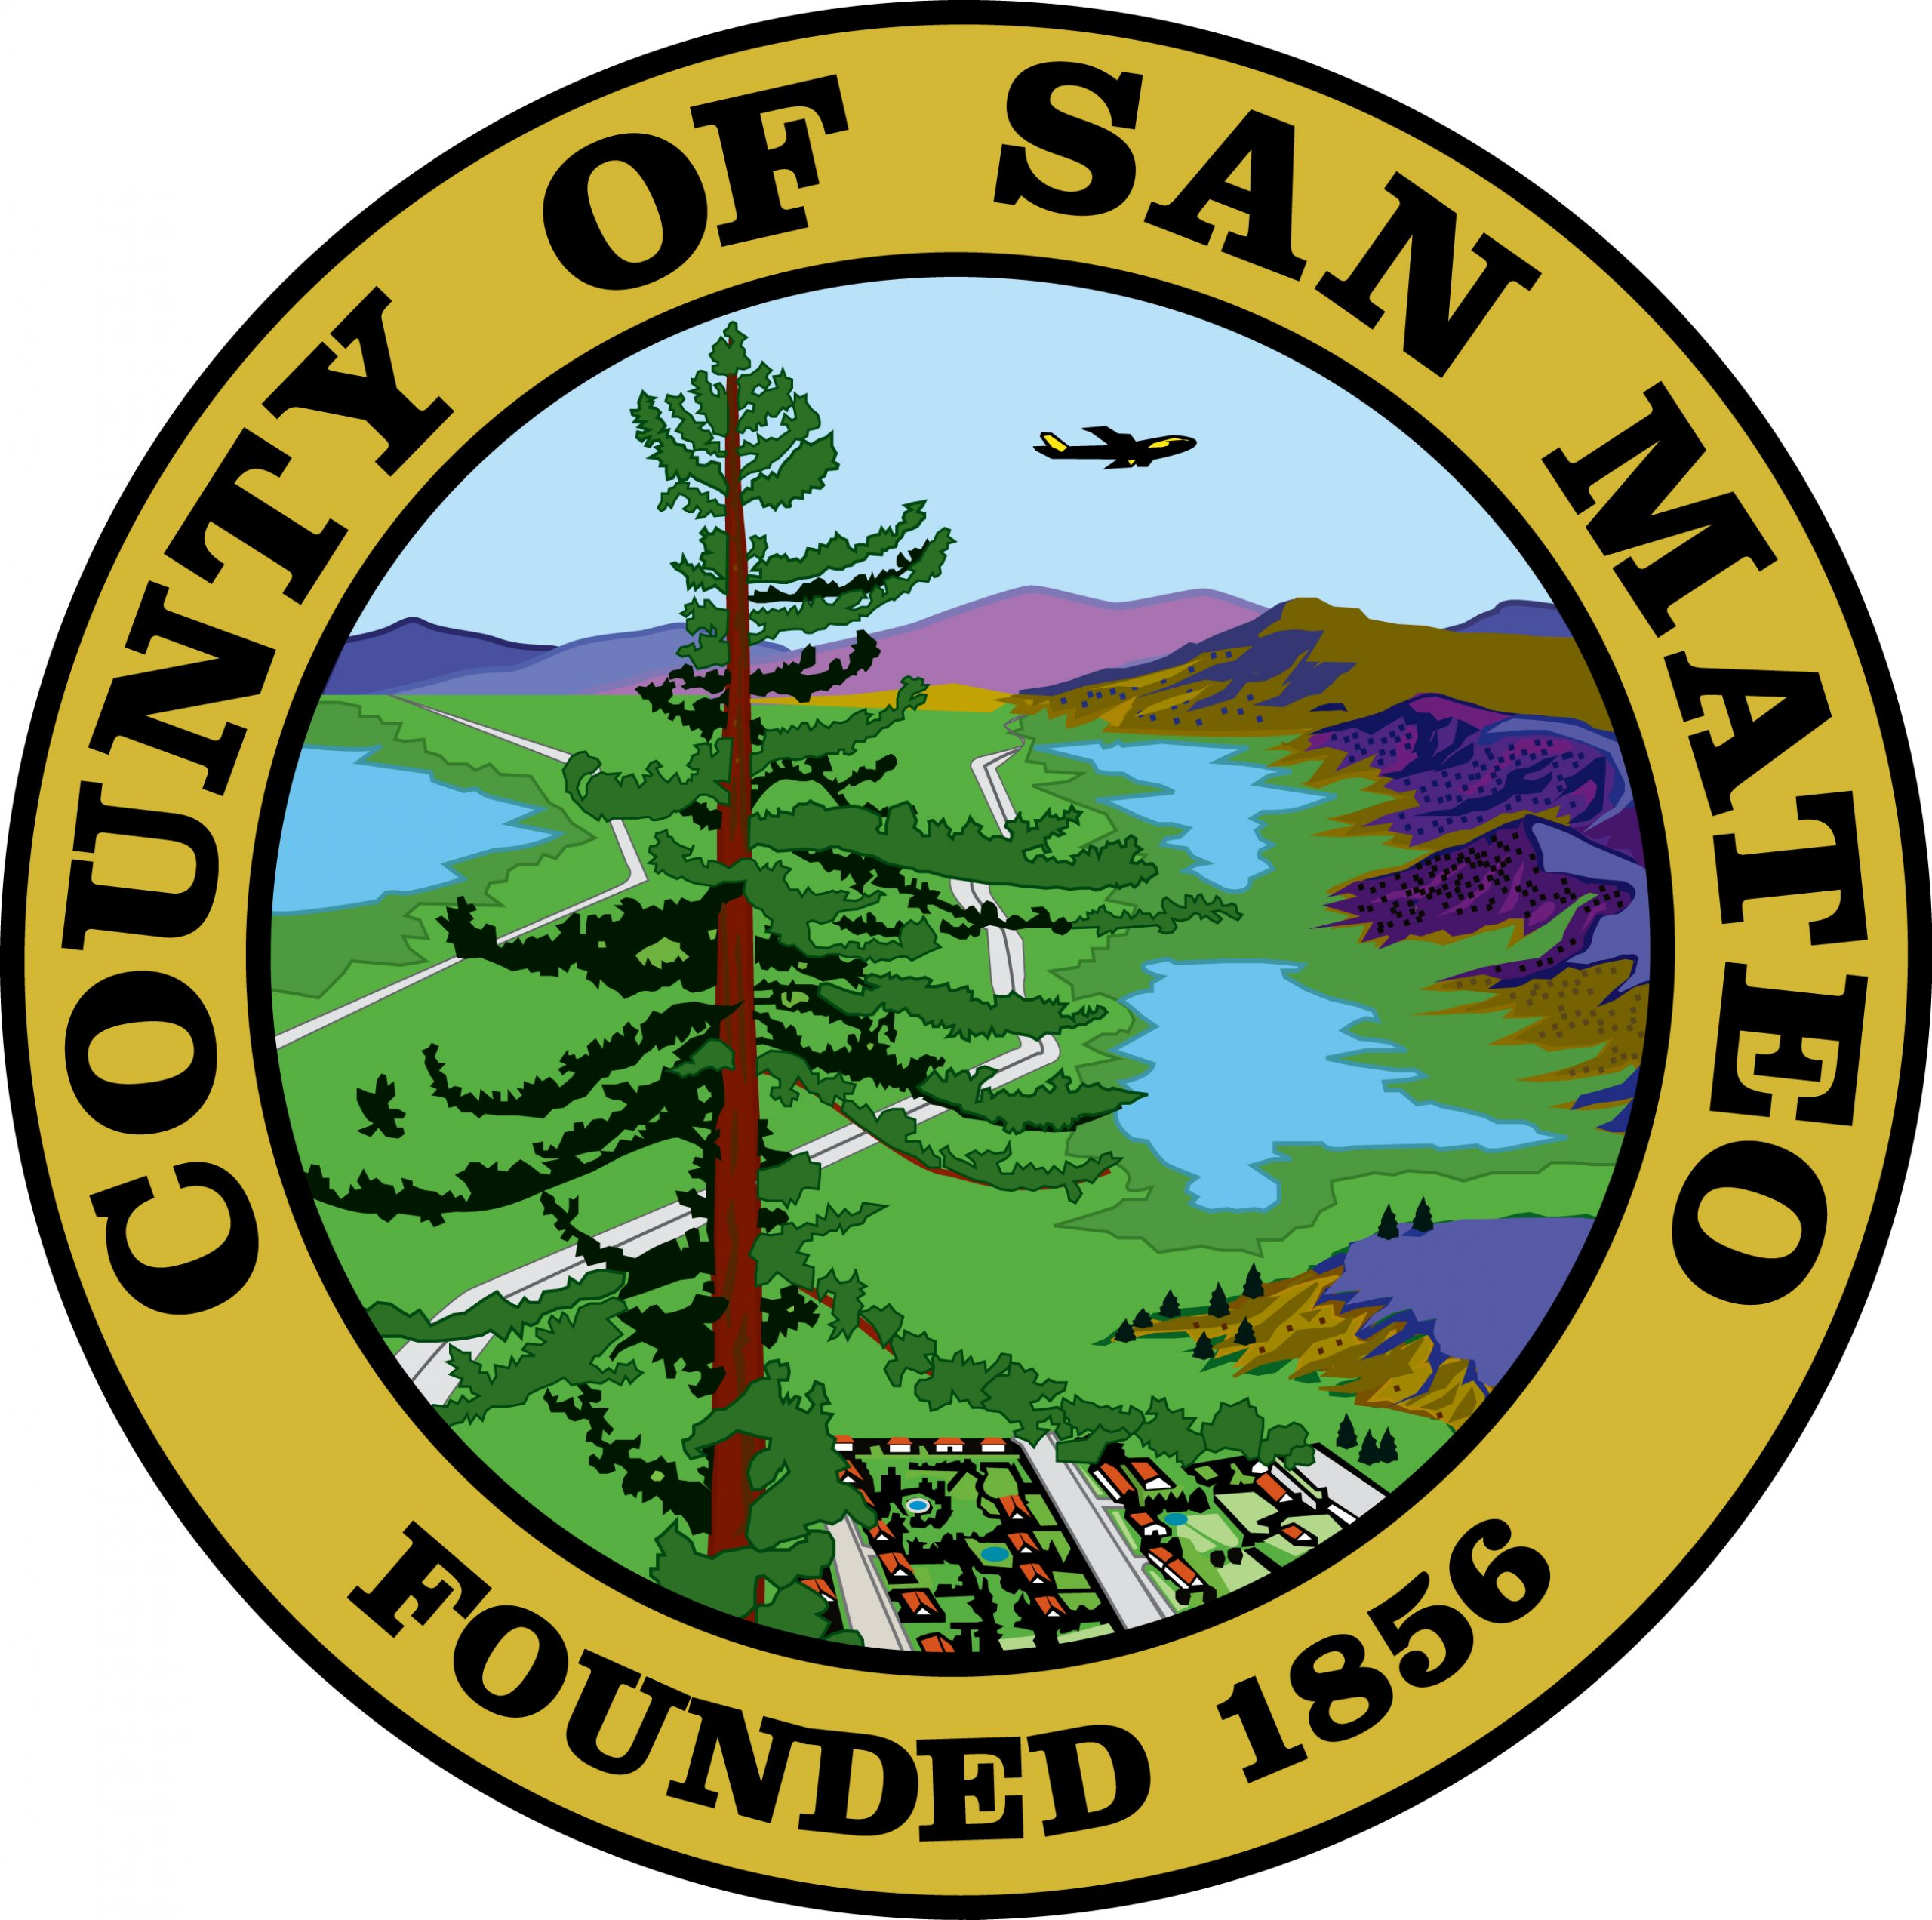 County of San Mateo